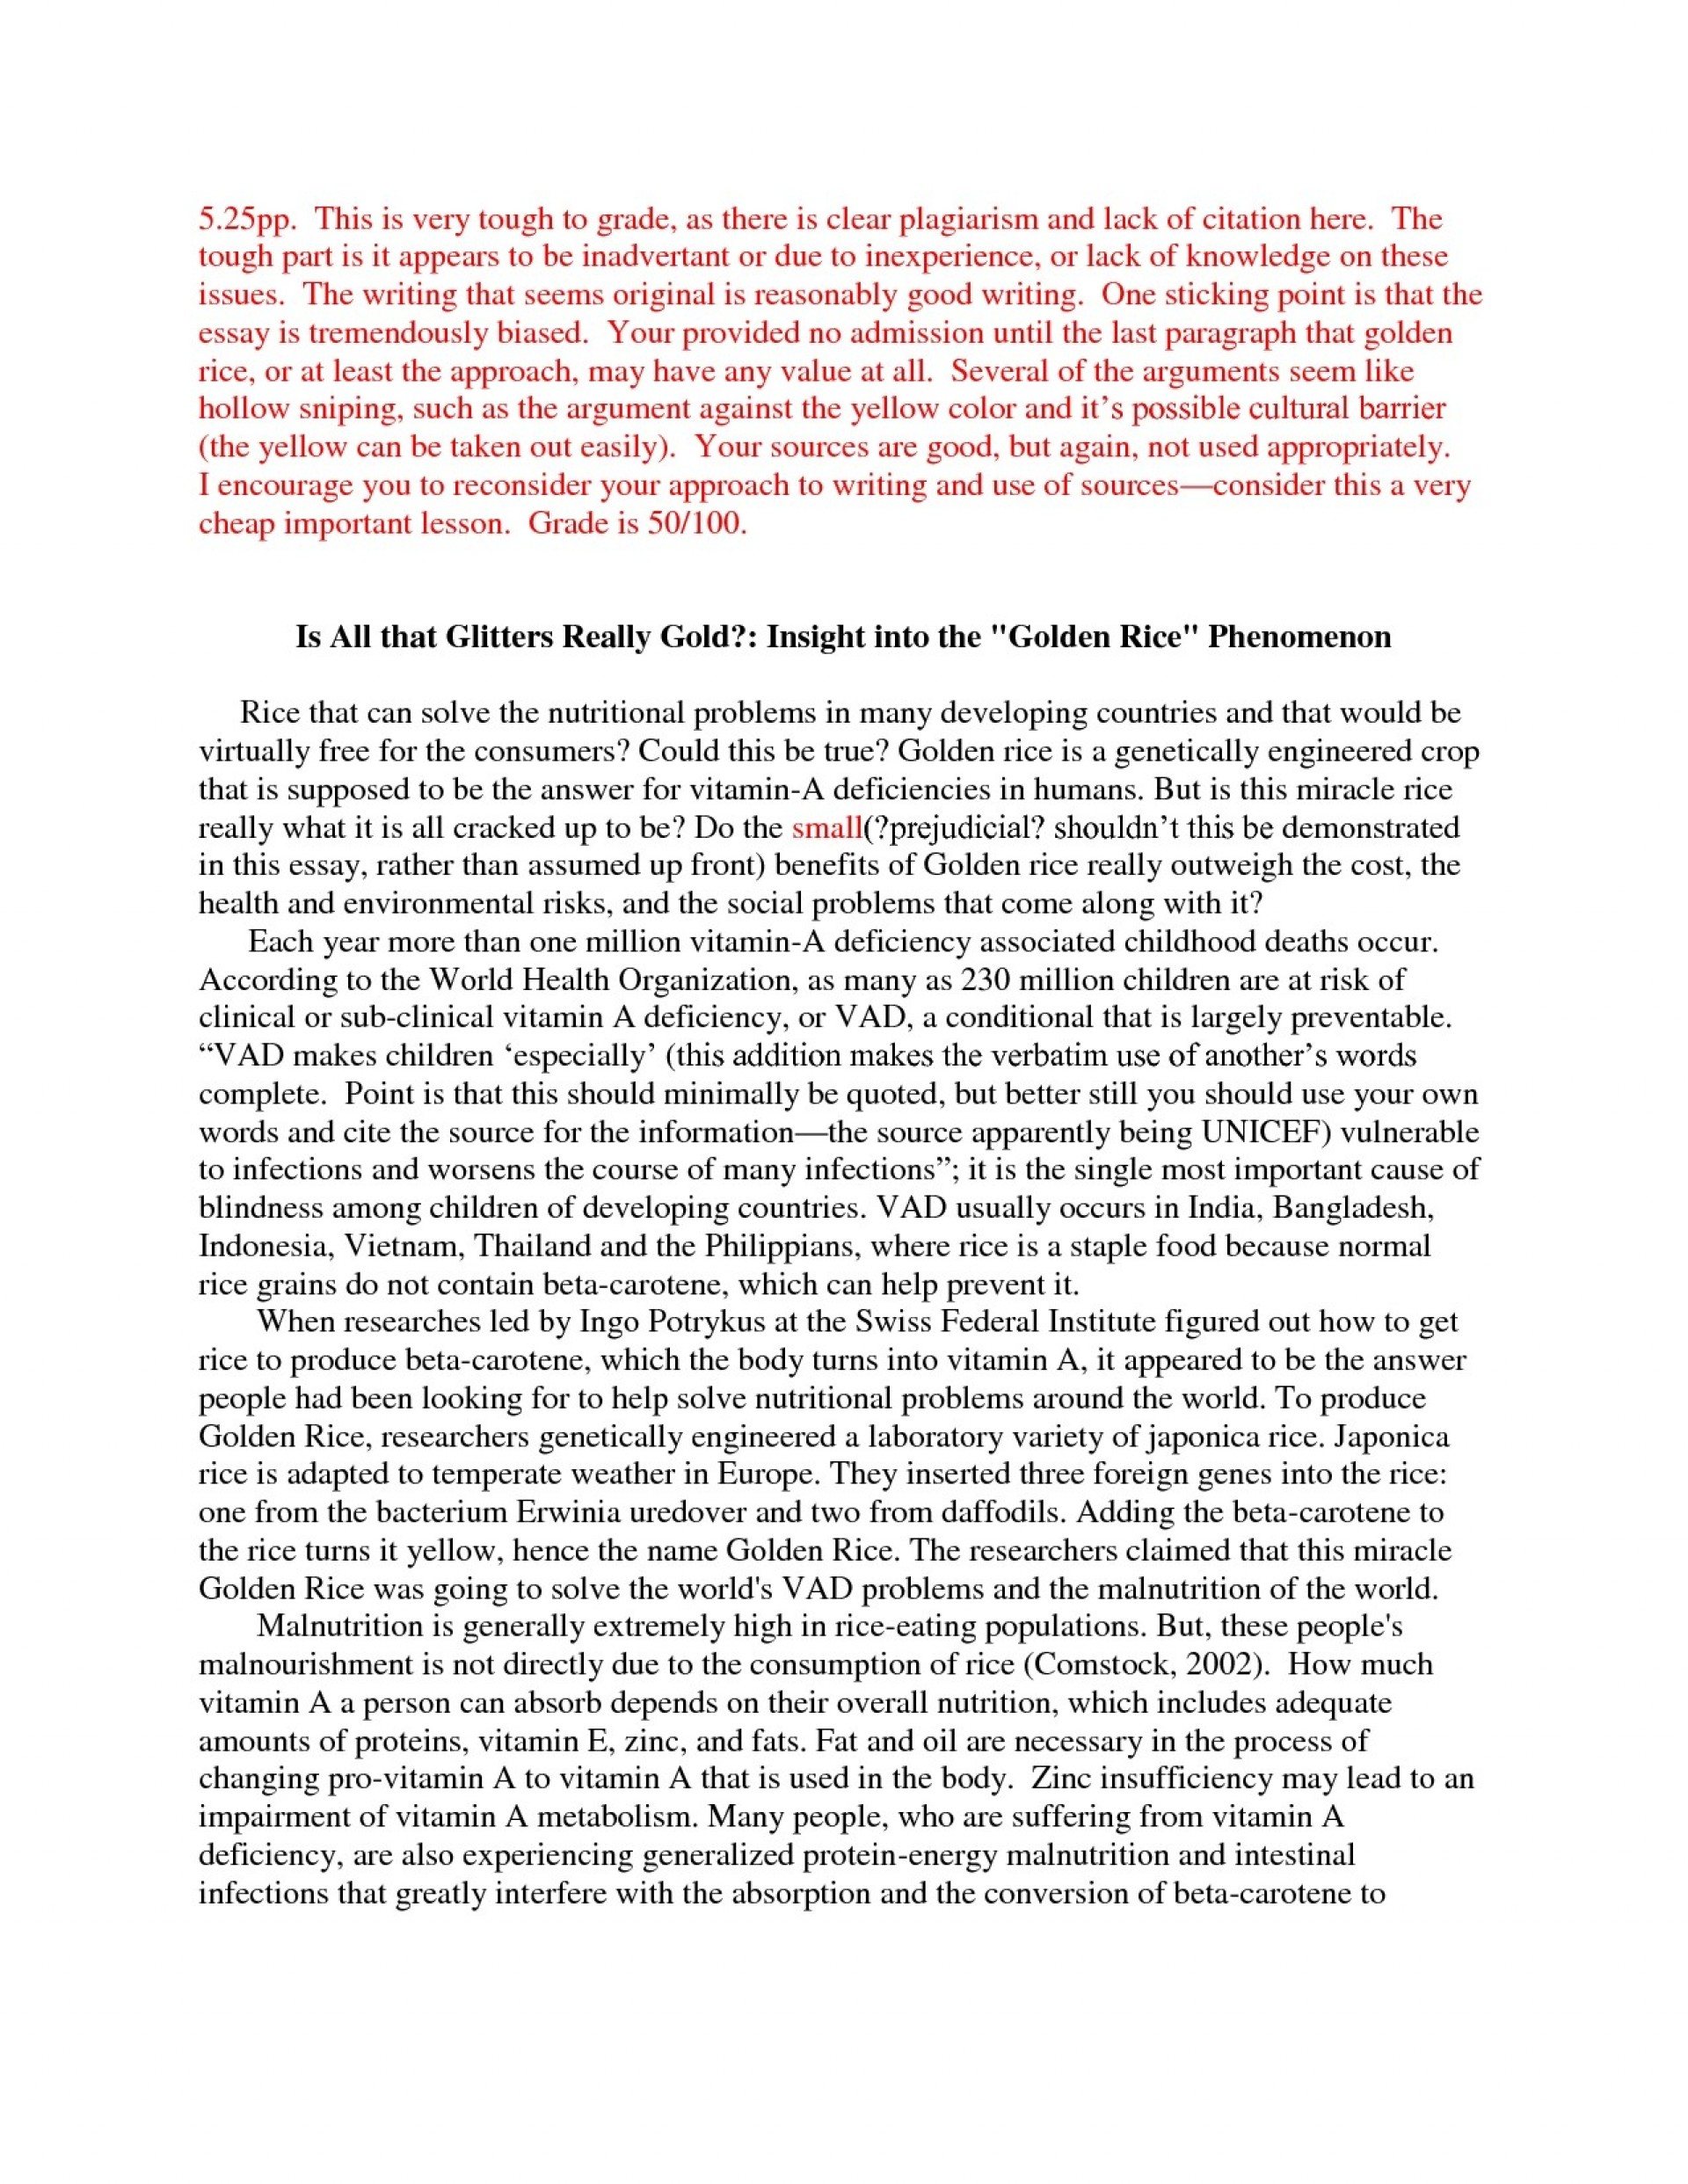 012 Essay Example Essays Examples Selo Yogawithjo Co Of College Wondrous Duke Mba 2018 1920